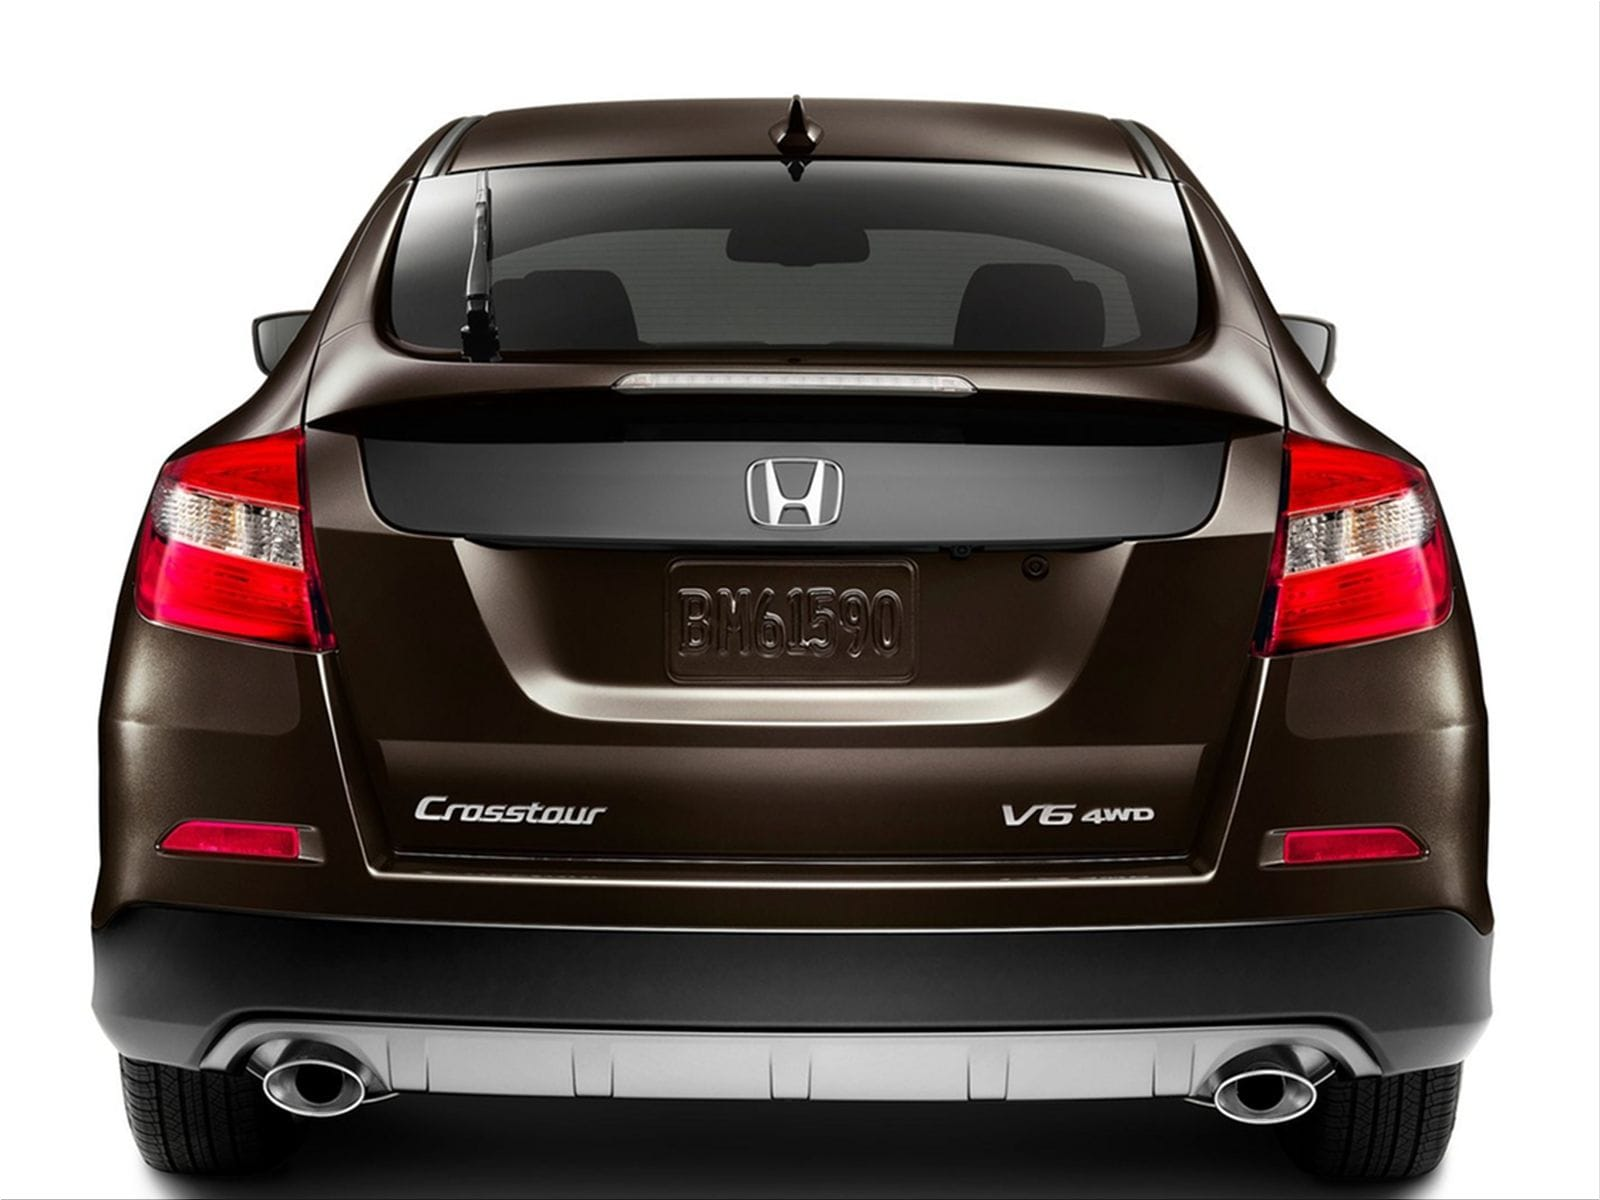 Lov This Kind Of Suv Coup Honda Crosstour Concept Lowered Prthe 2013 Goes On Sale In The Us November 20 2012 With Pricing Beginning At 27230 A Starting Msrp 525 Lower Than